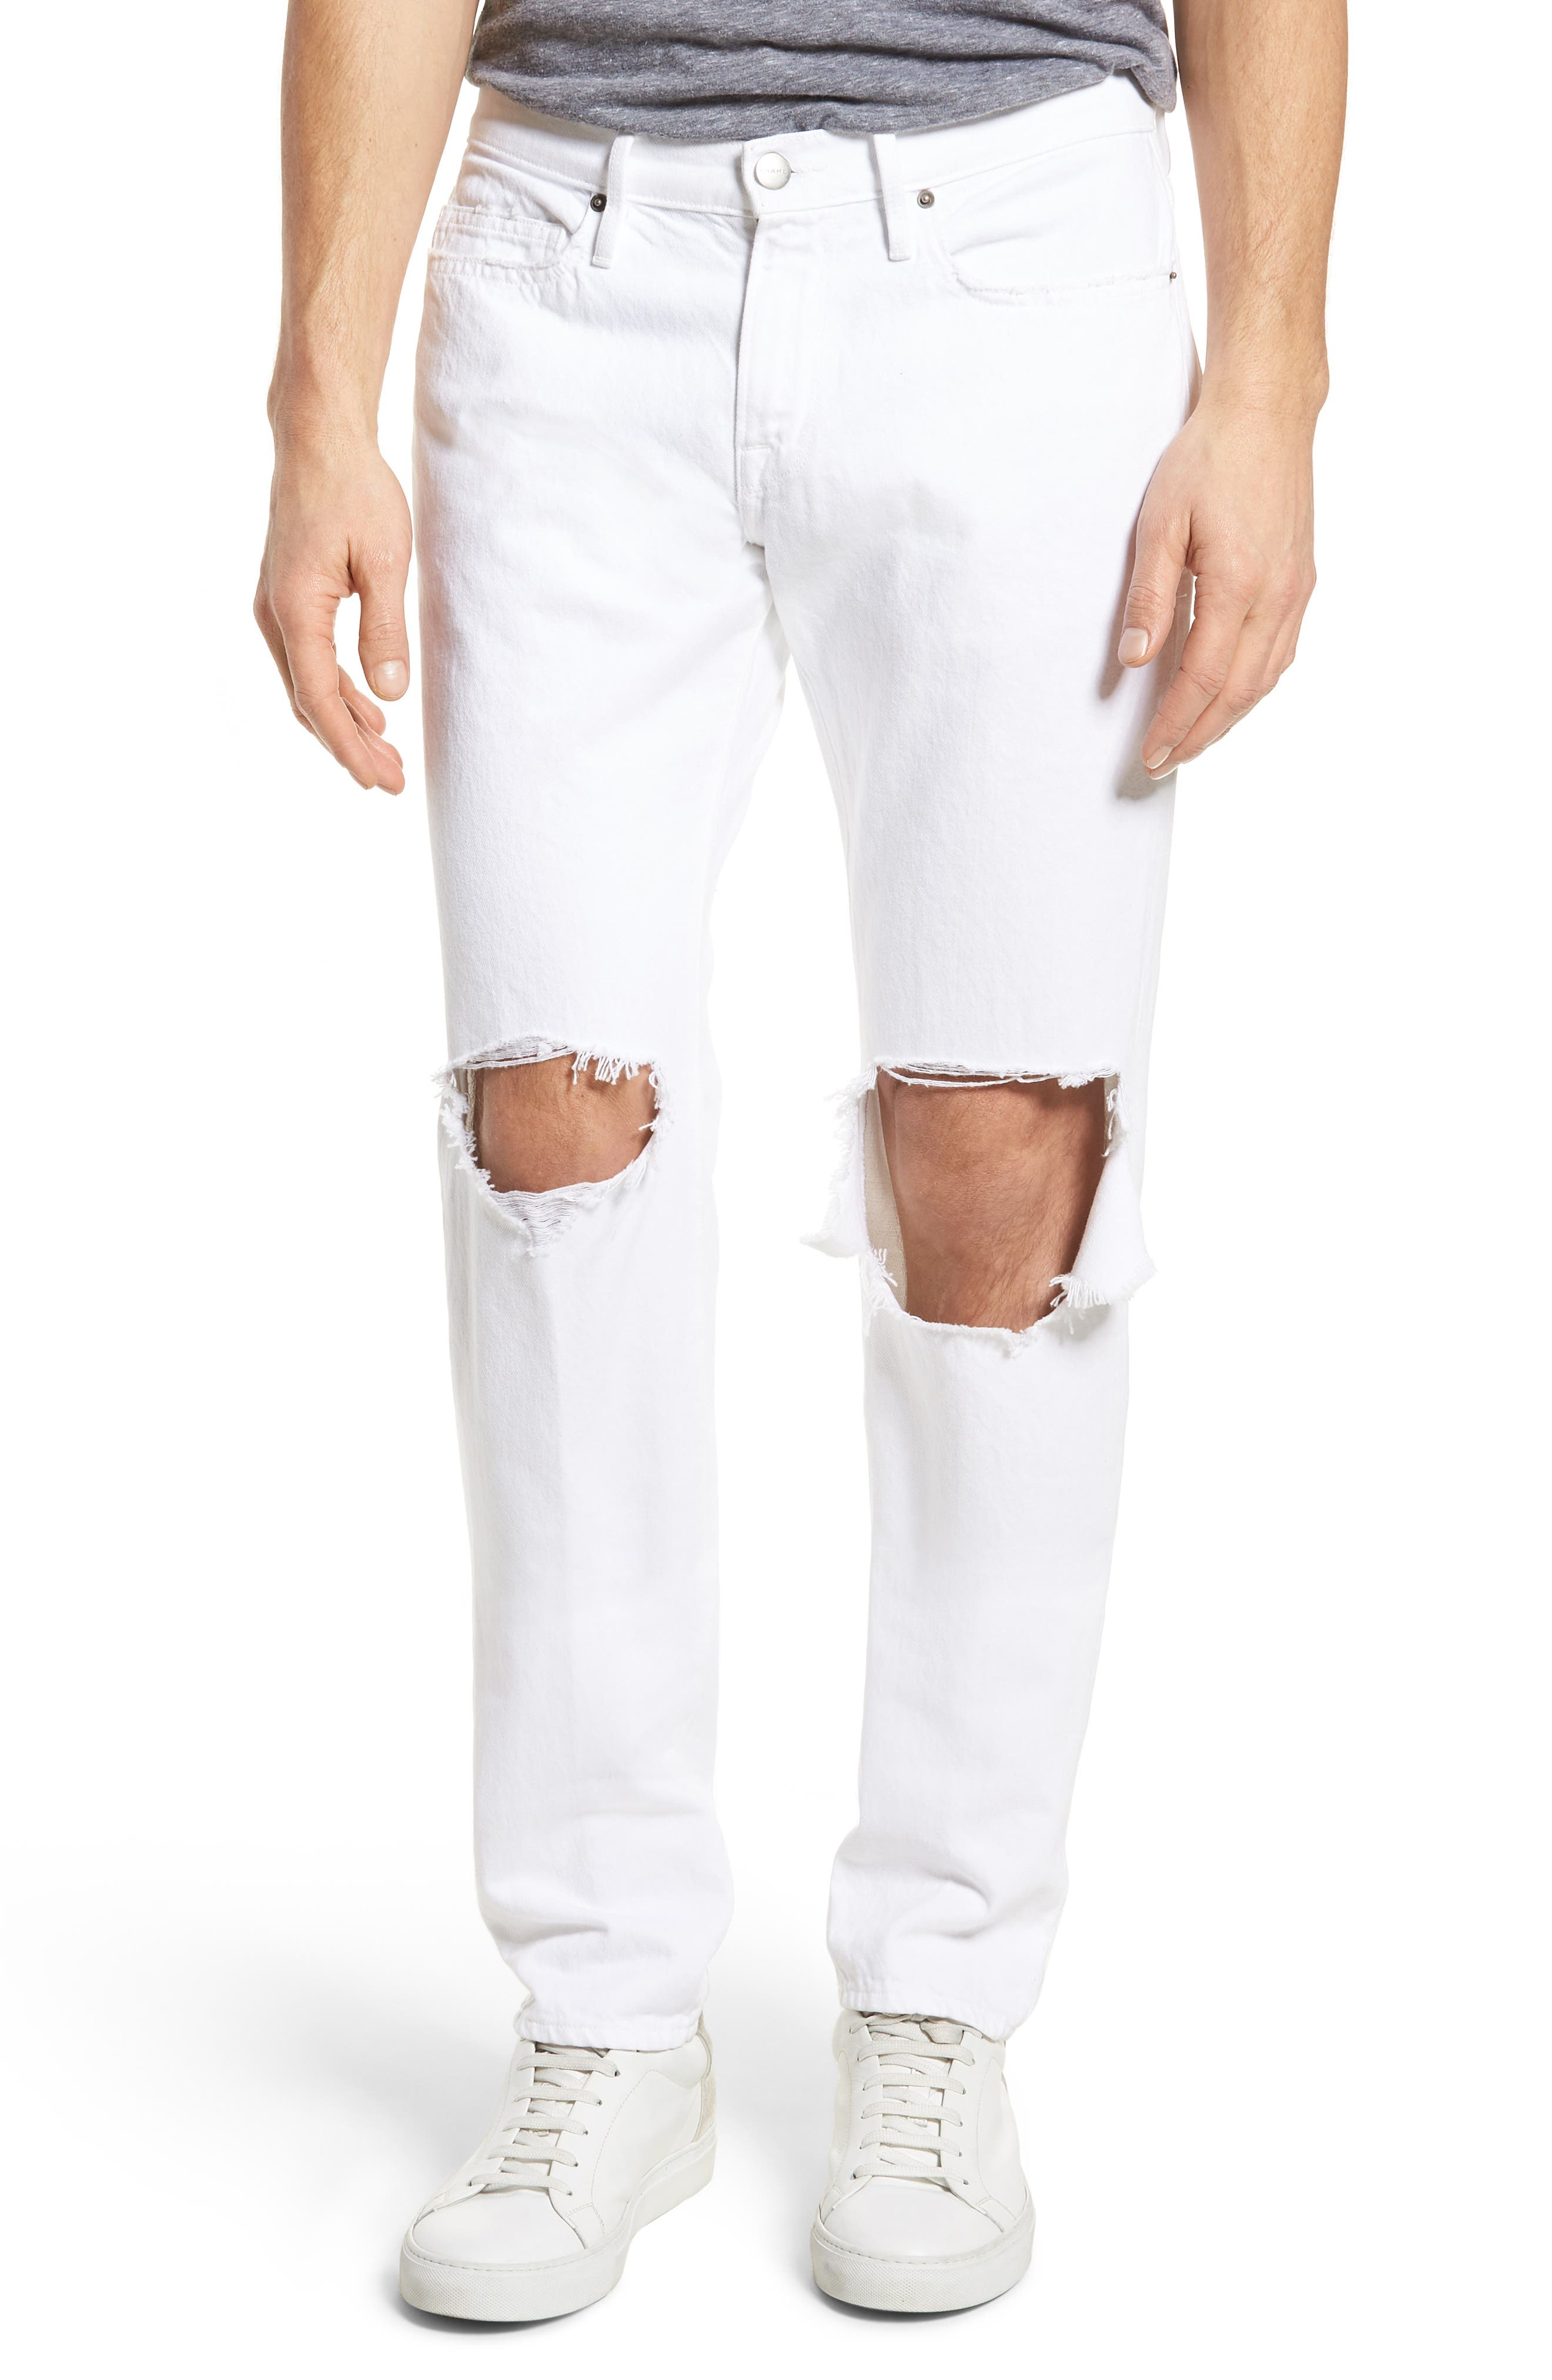 L'Homme Skinny Fit Jeans,                         Main,                         color, White Out